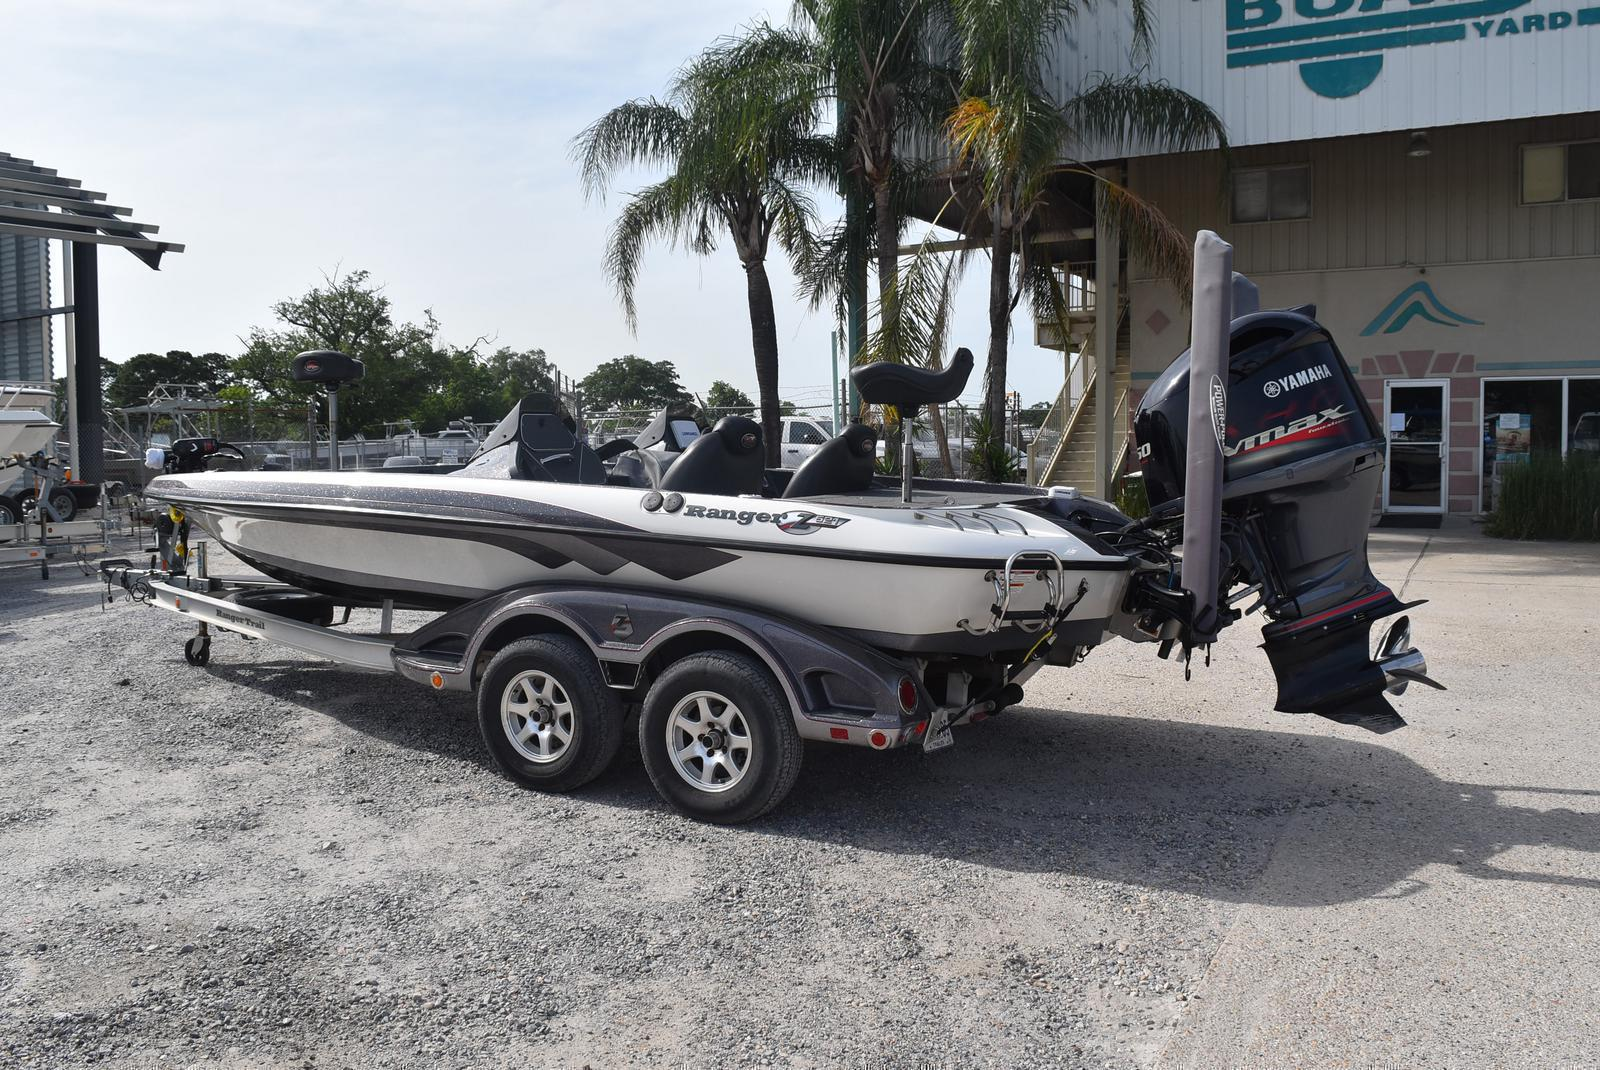 2010 Ranger Boats boat for sale, model of the boat is Z521 Comanche & Image # 17 of 35